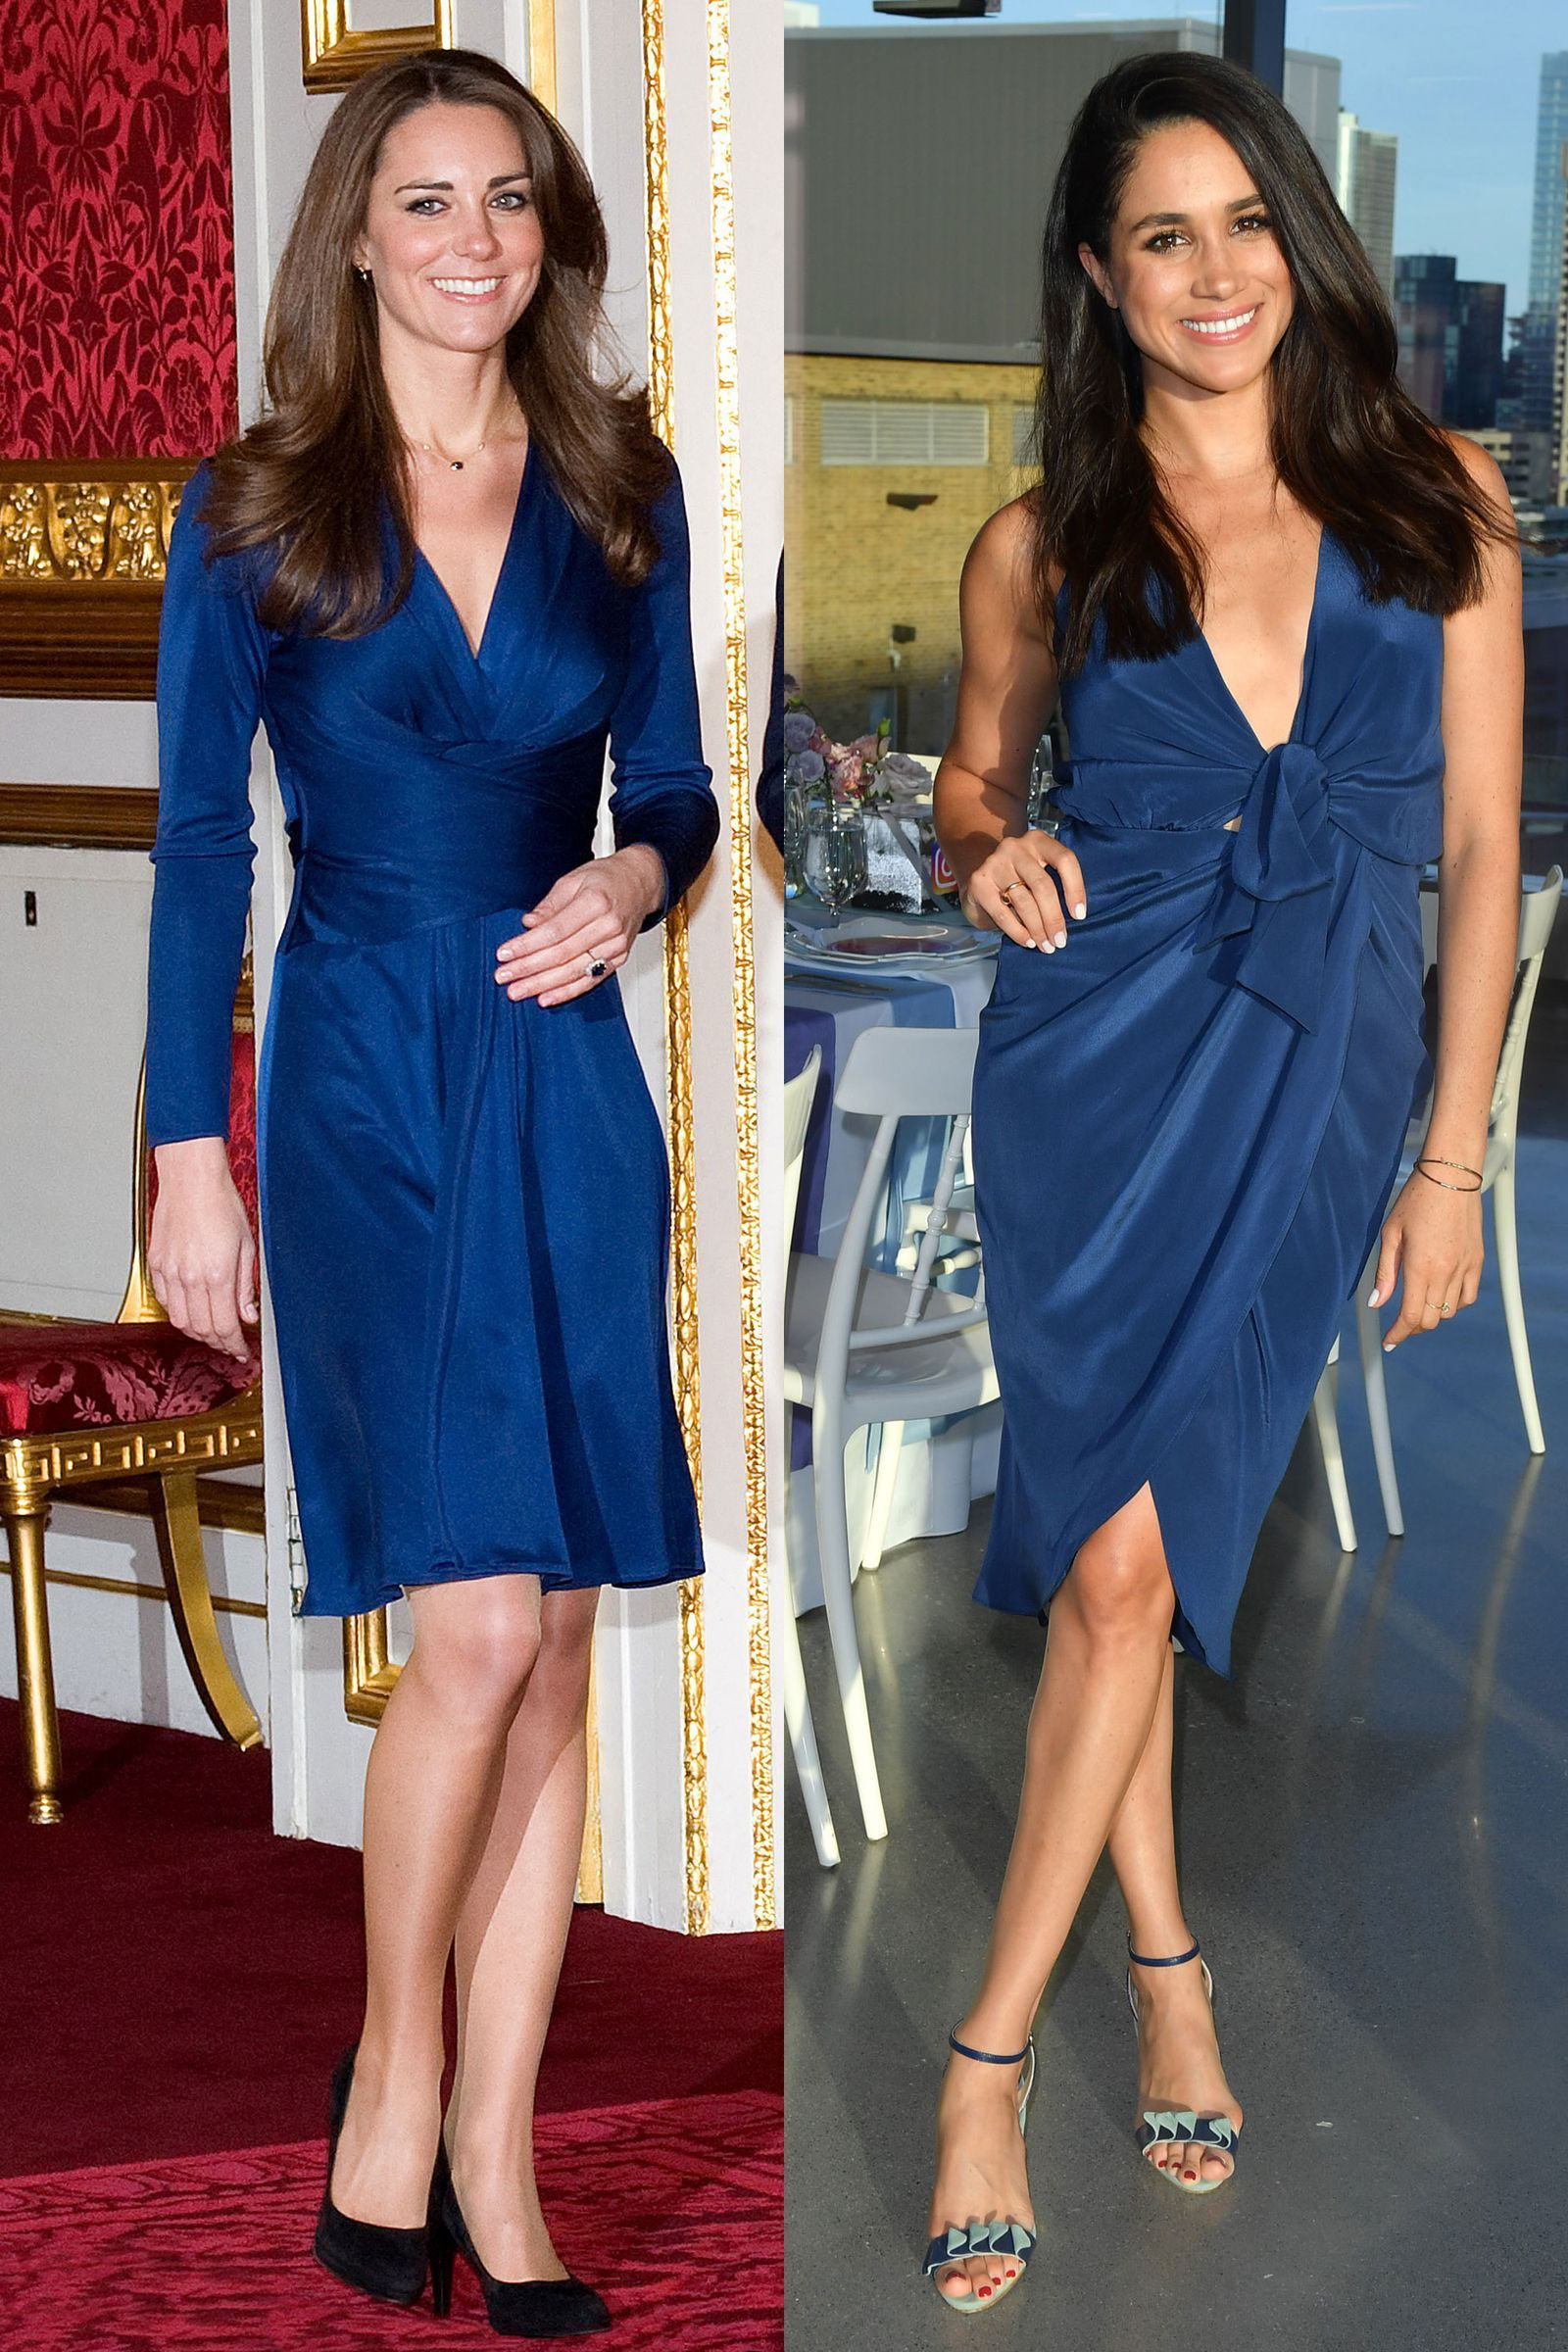 57976eaf98a77 You ve definitely seen Kate s look before — it s the one she wore to  announce her engagement back in 2010. Meghan took a cue from her future  sister-in-law ...